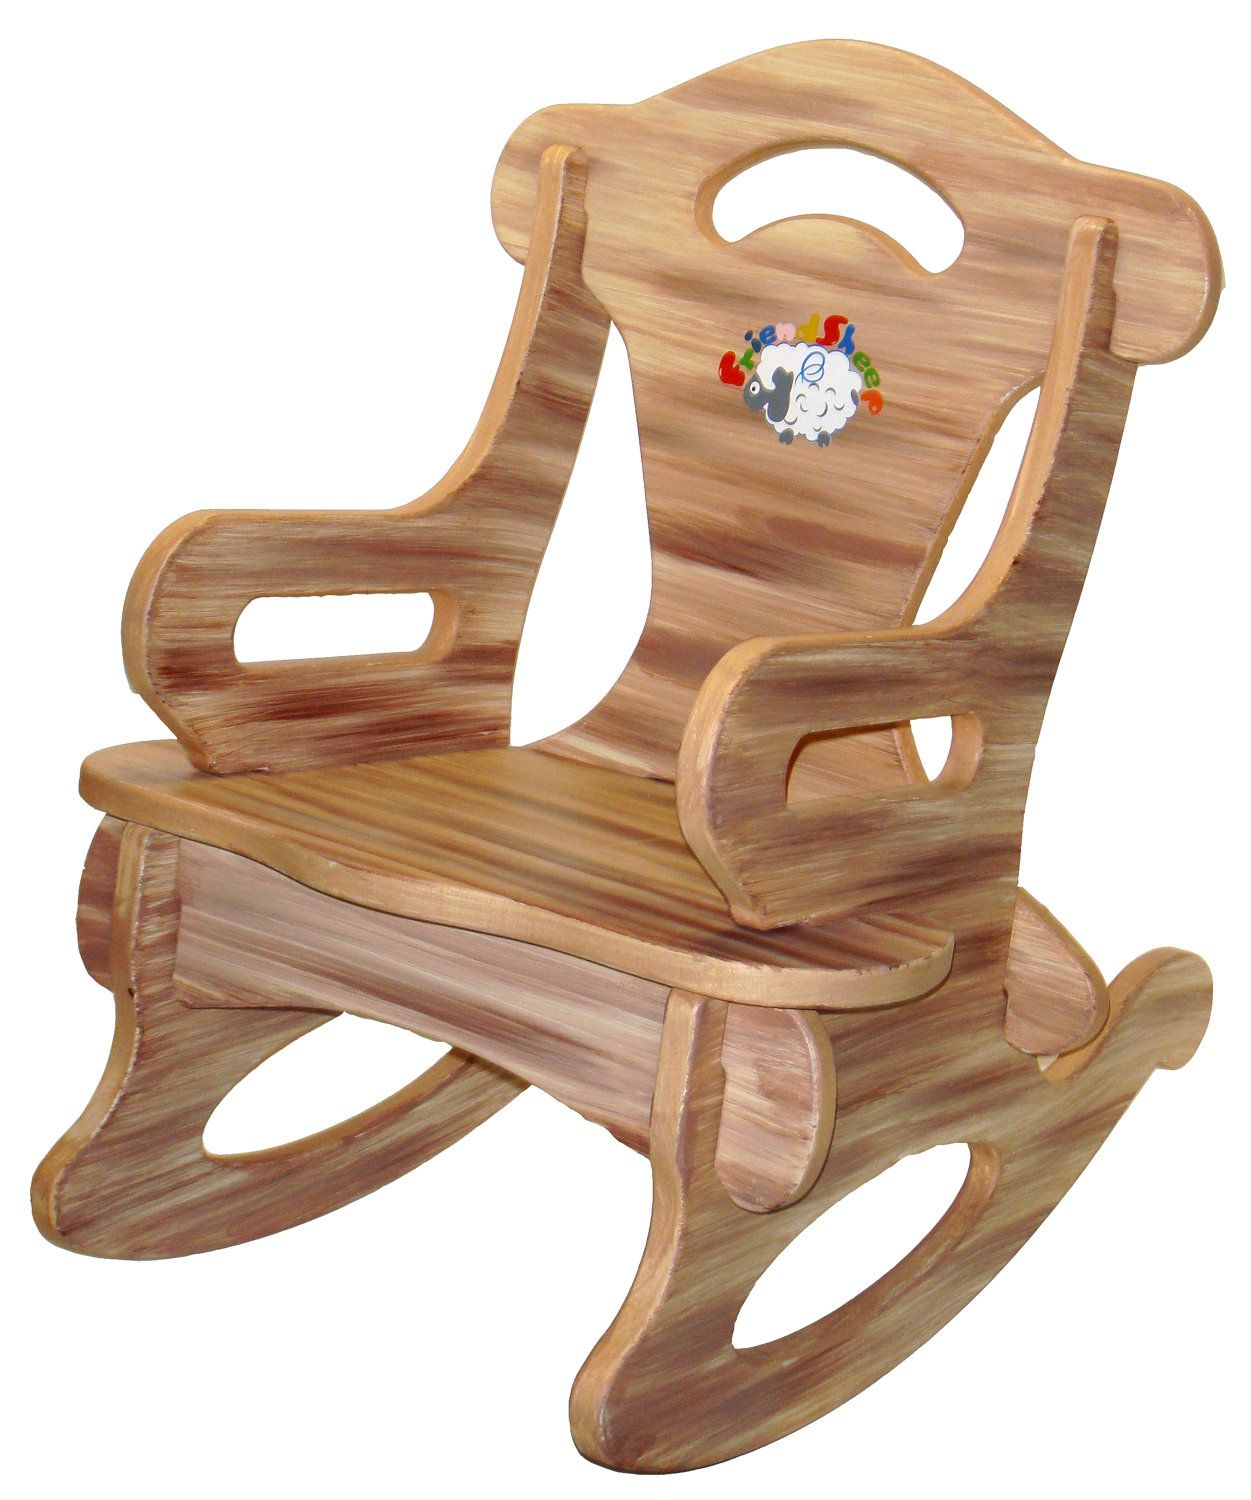 Child Wooden Rocking Chair Brown Puzzle Rocker Rocking Chair Solid Wood For Kid Child Baby